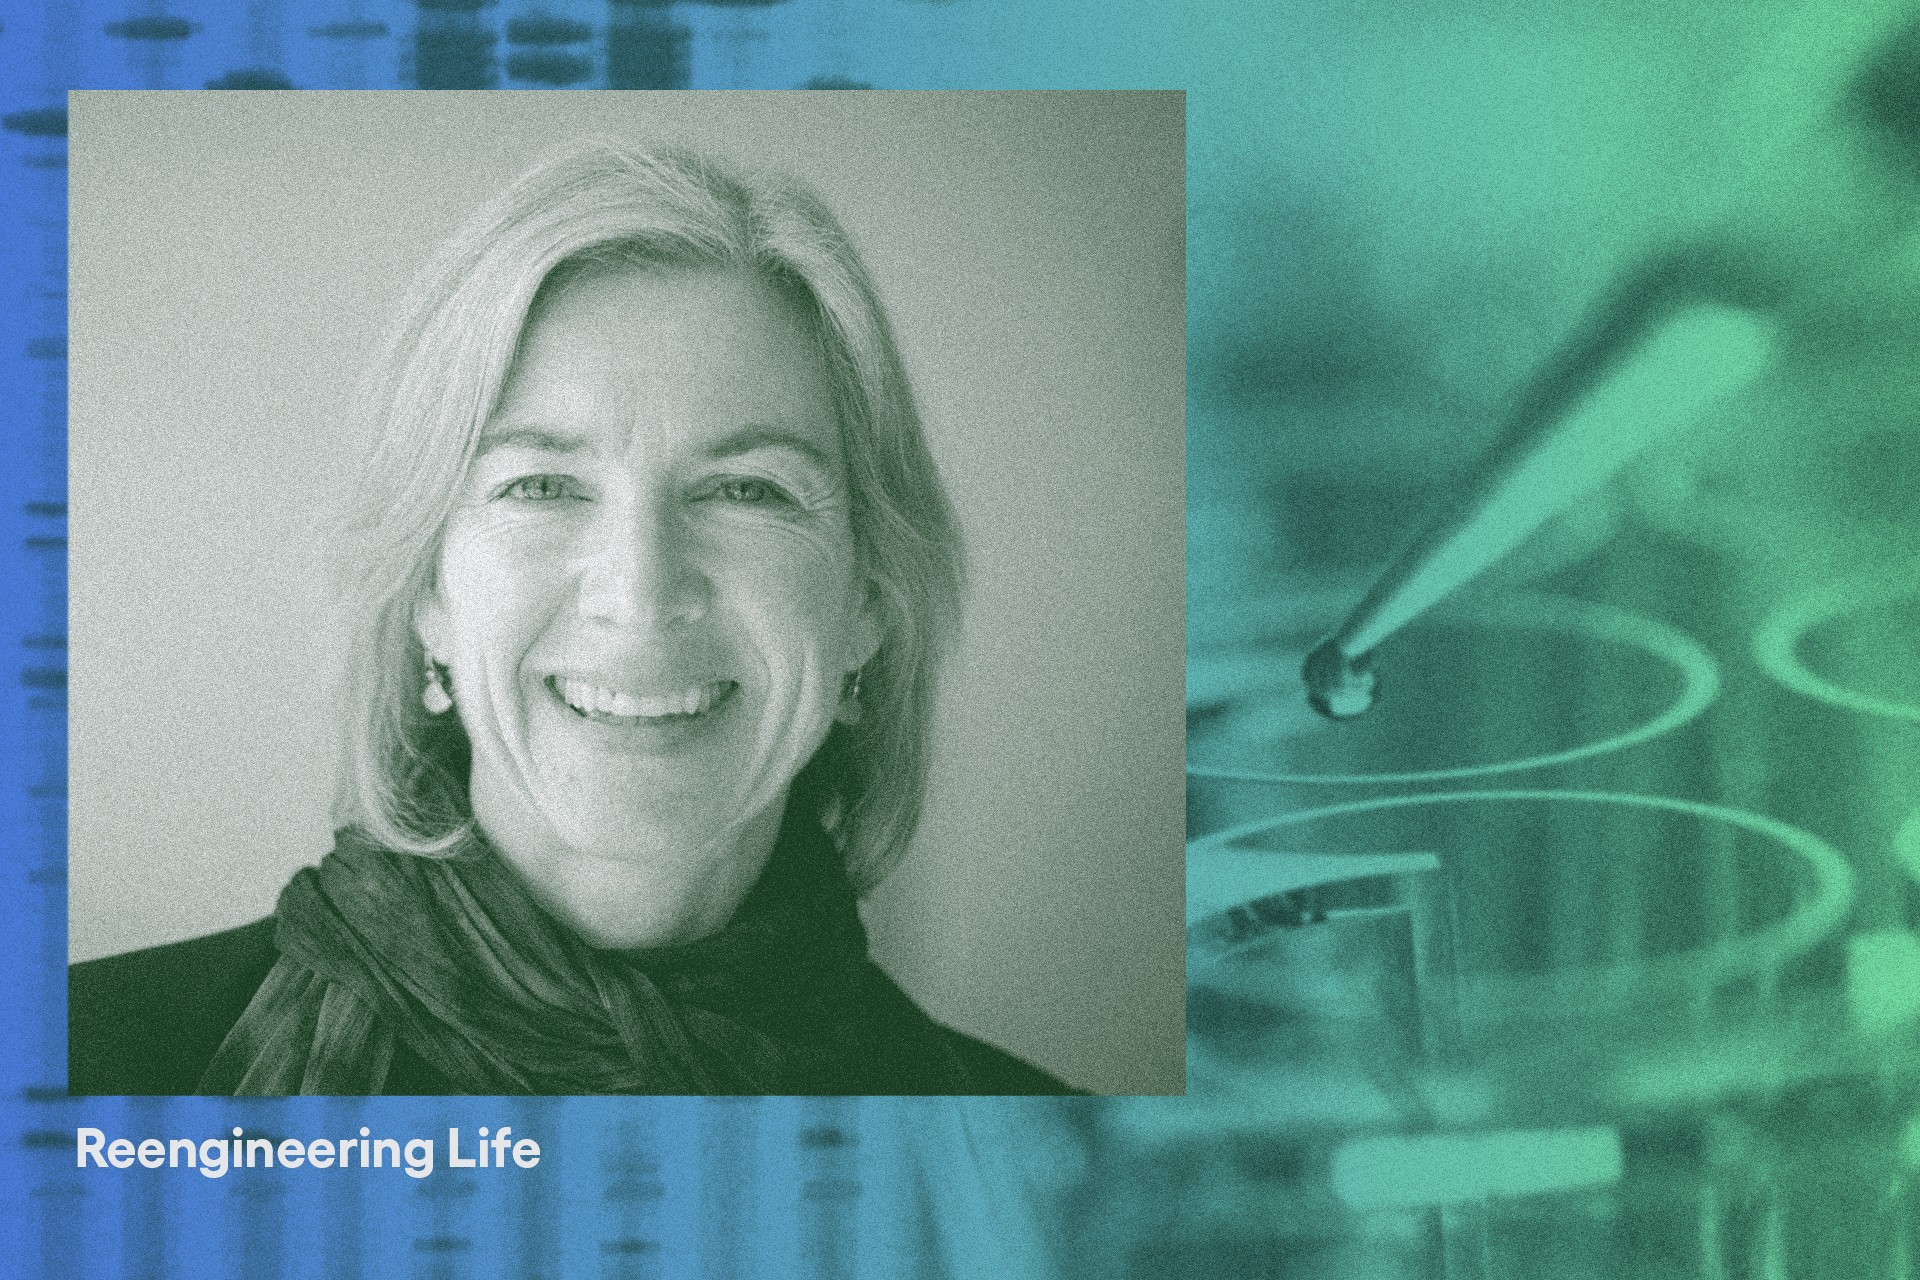 Photo of Jennifer Douda against a blue-to-green filtered image of pipette.